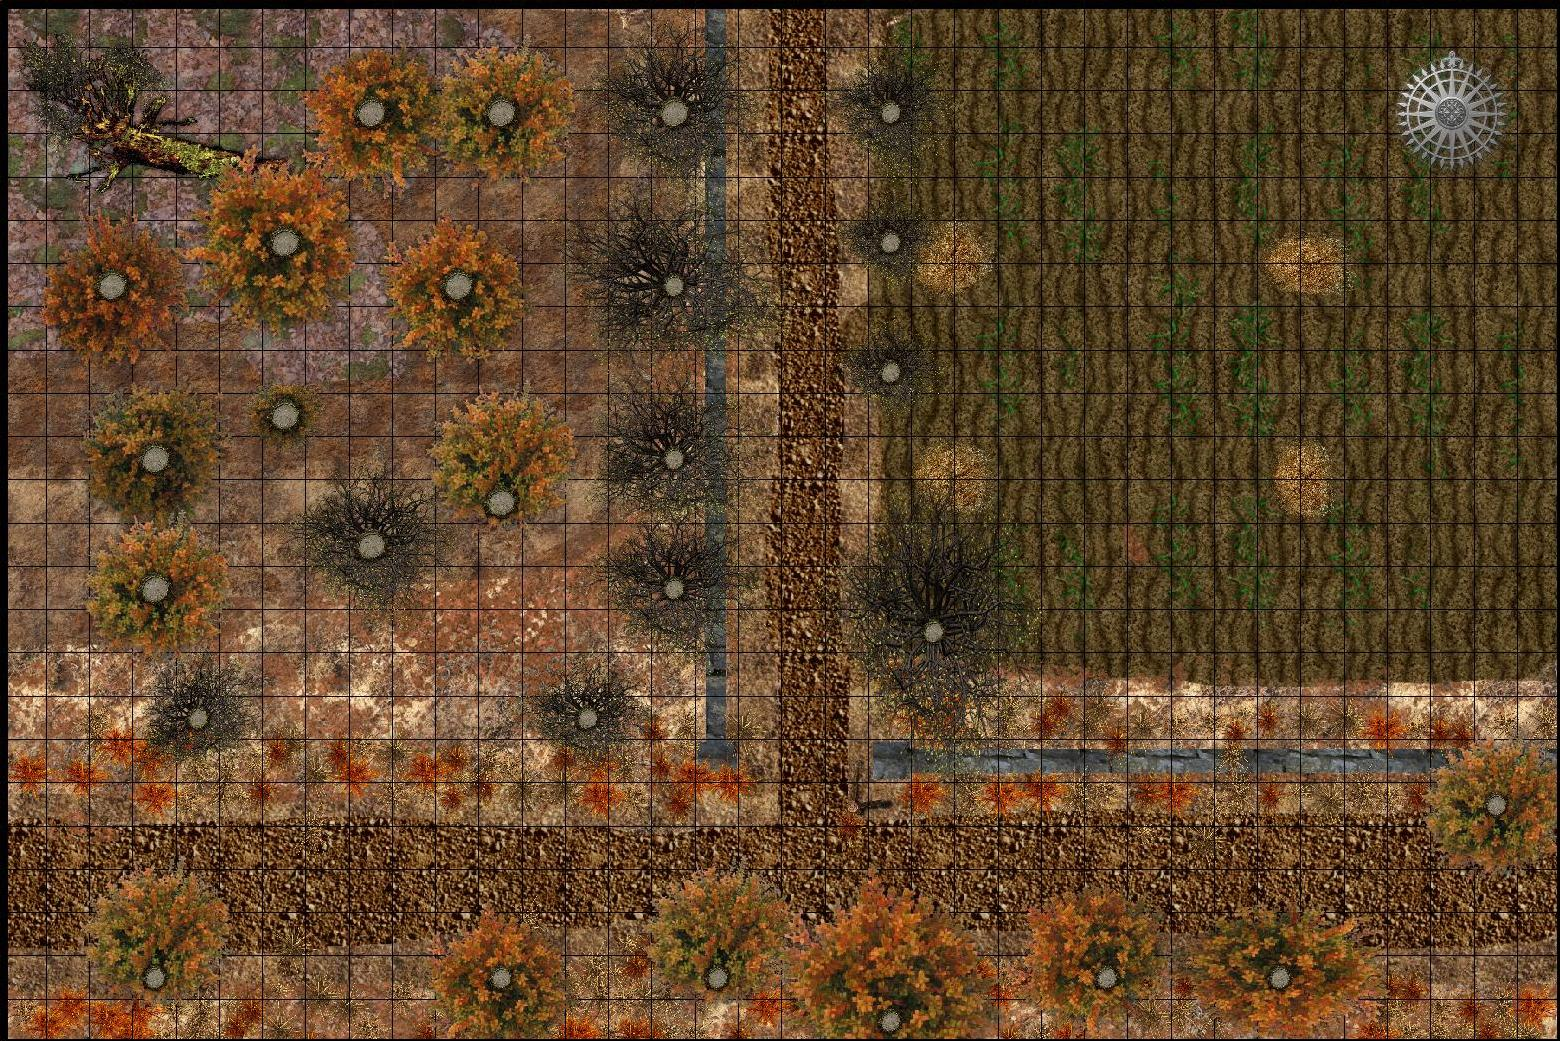 Autumn Map 2 Farm Edge